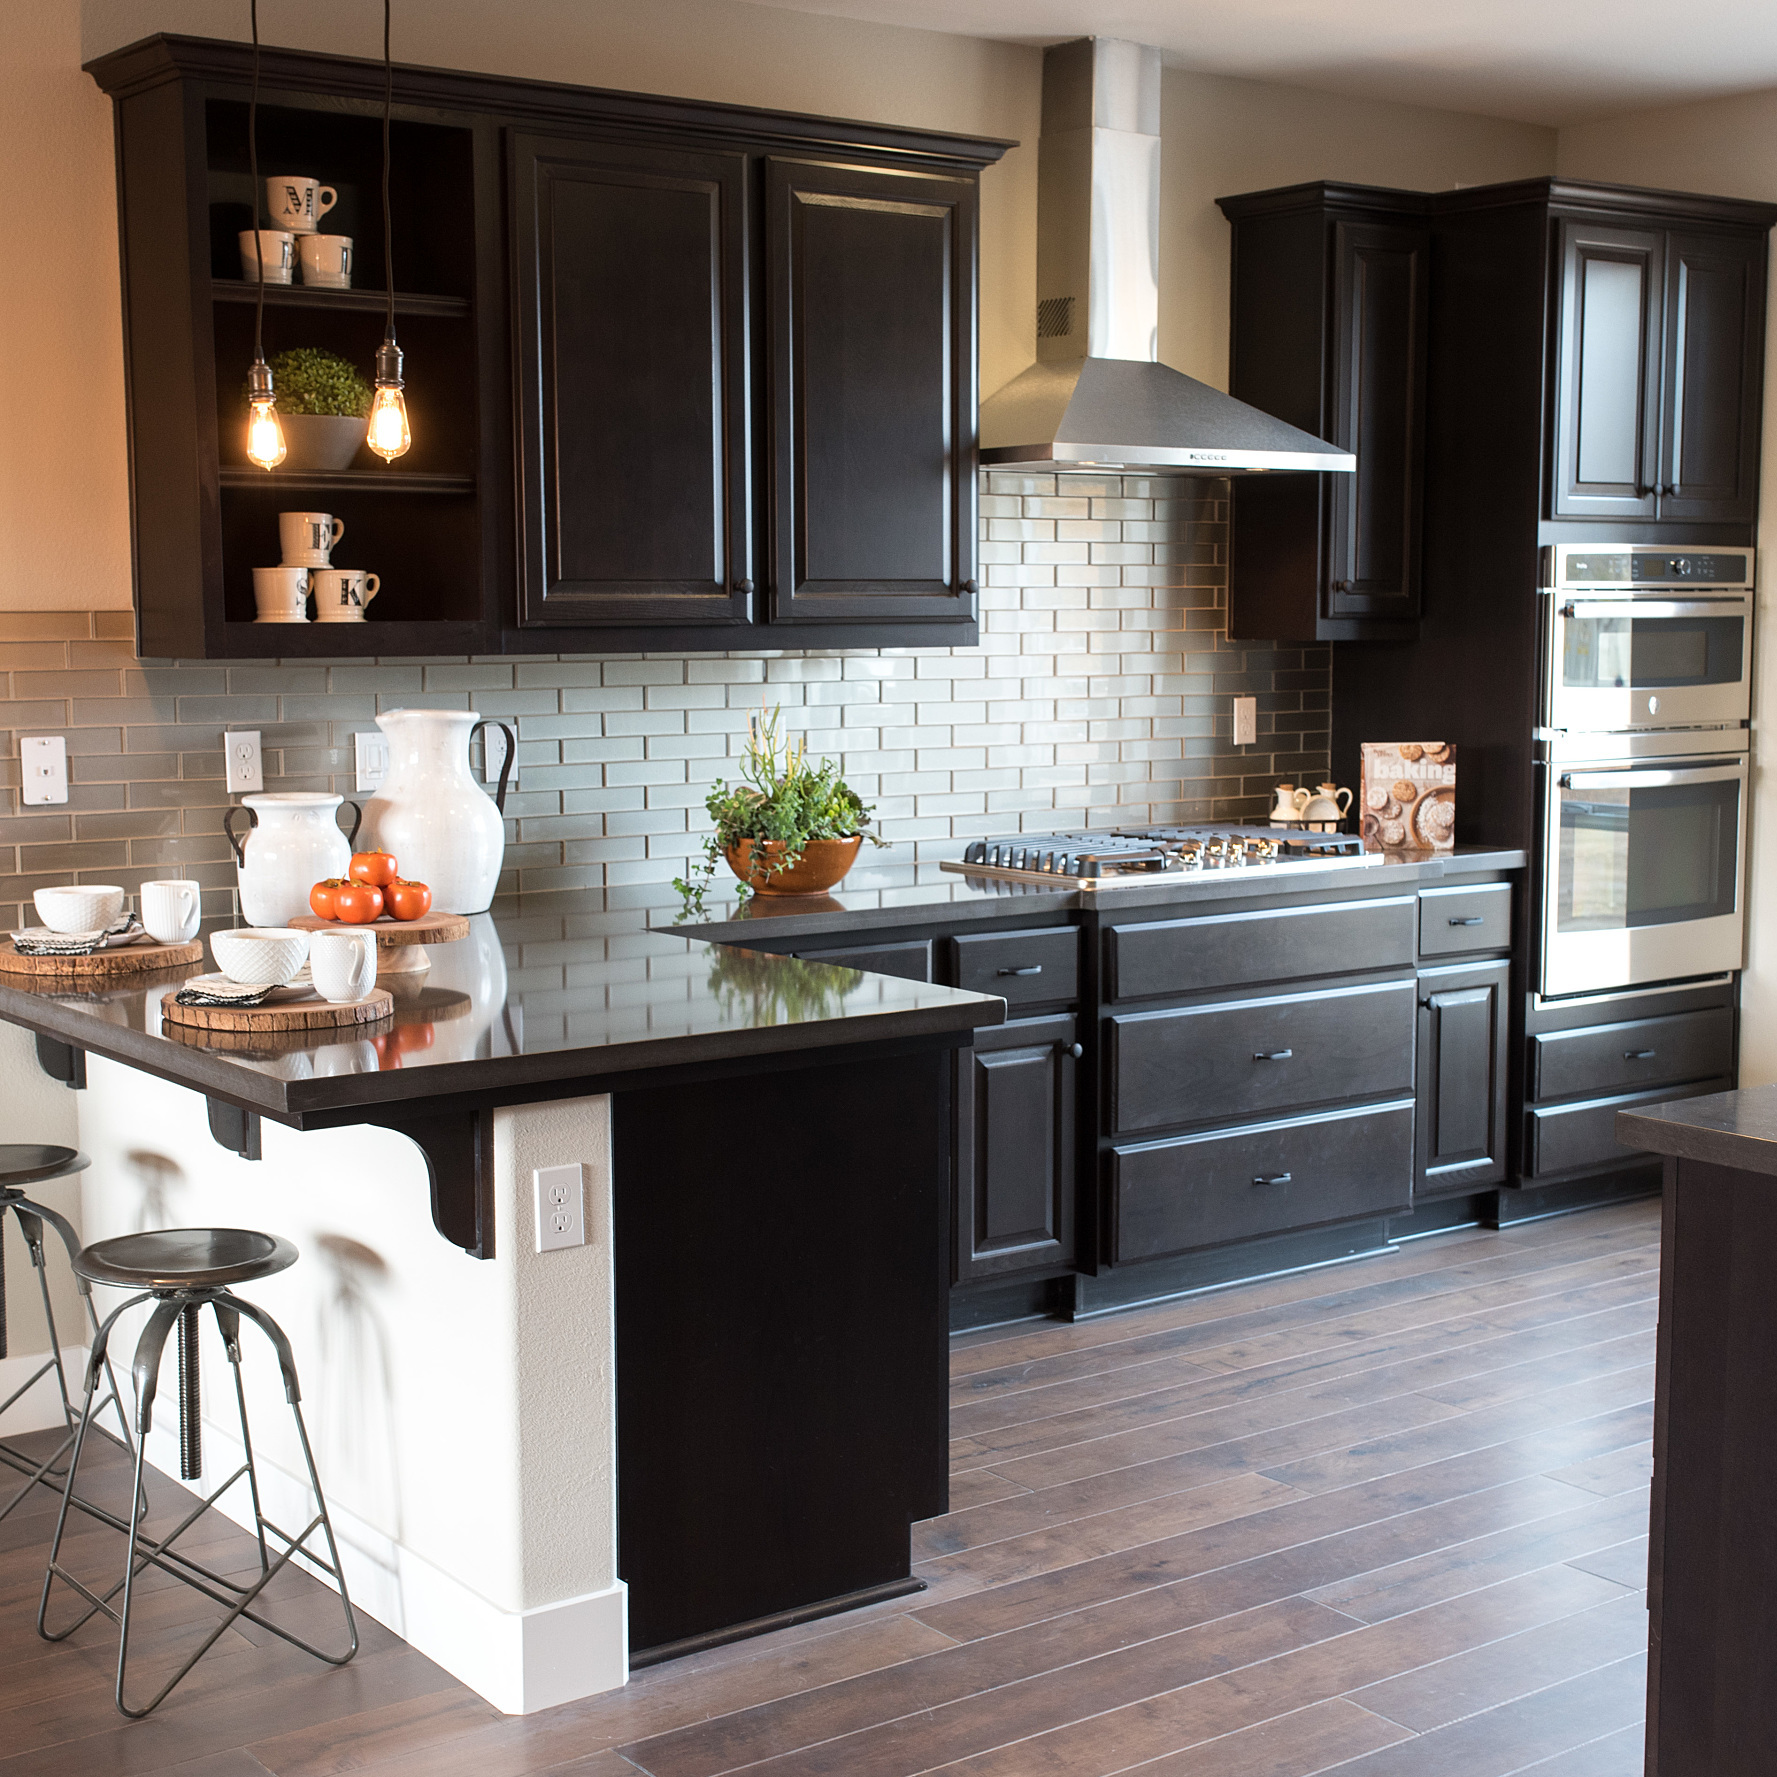 Image of: Kitchen Backsplash Tile How To Pick The Perfect Pattern For Your Home Martha Stewart